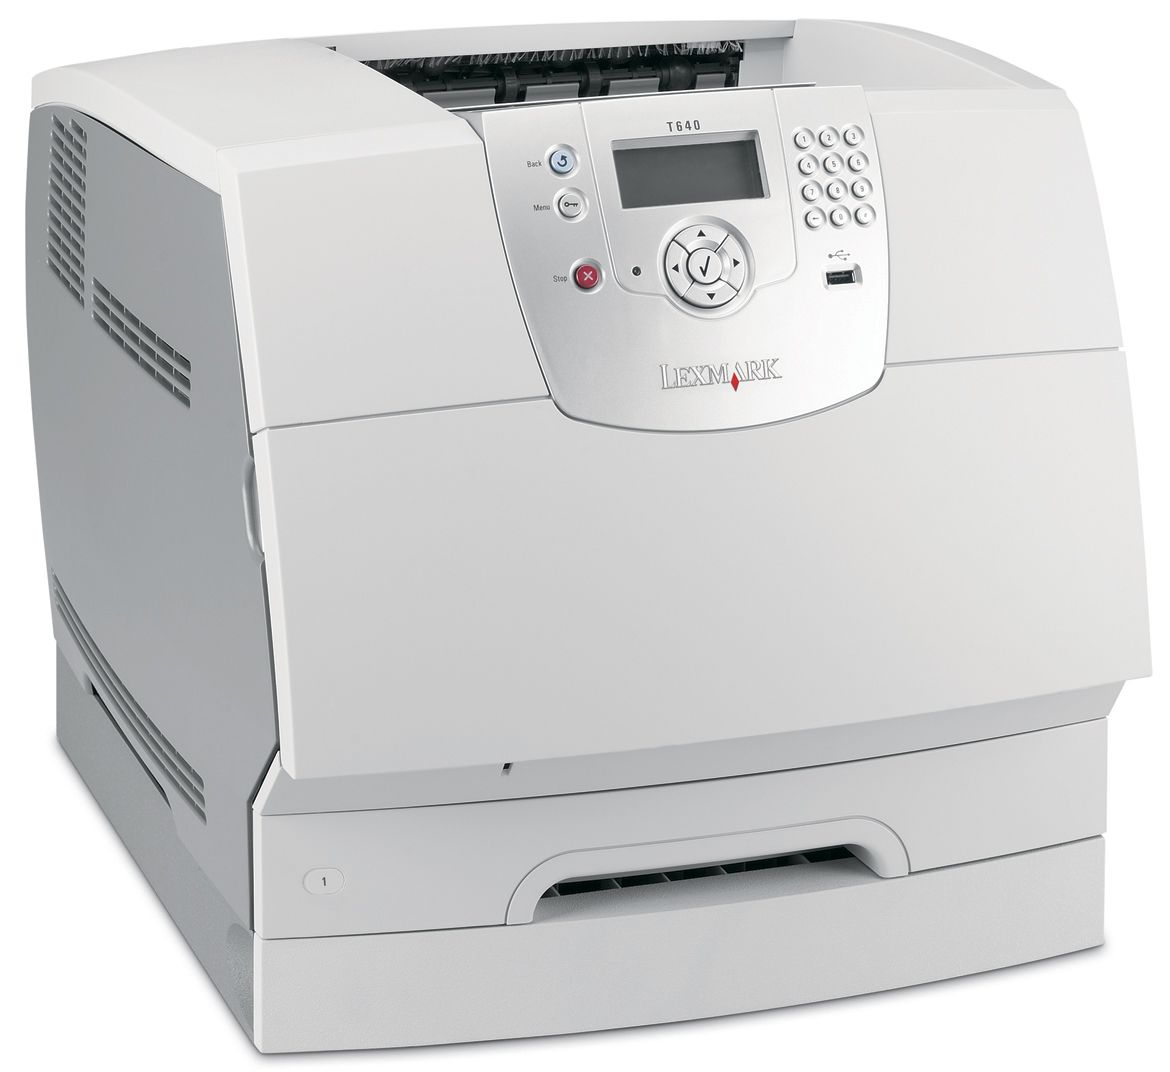 Lexmark T640 T642 T644 Printer Service Printer Maintenance